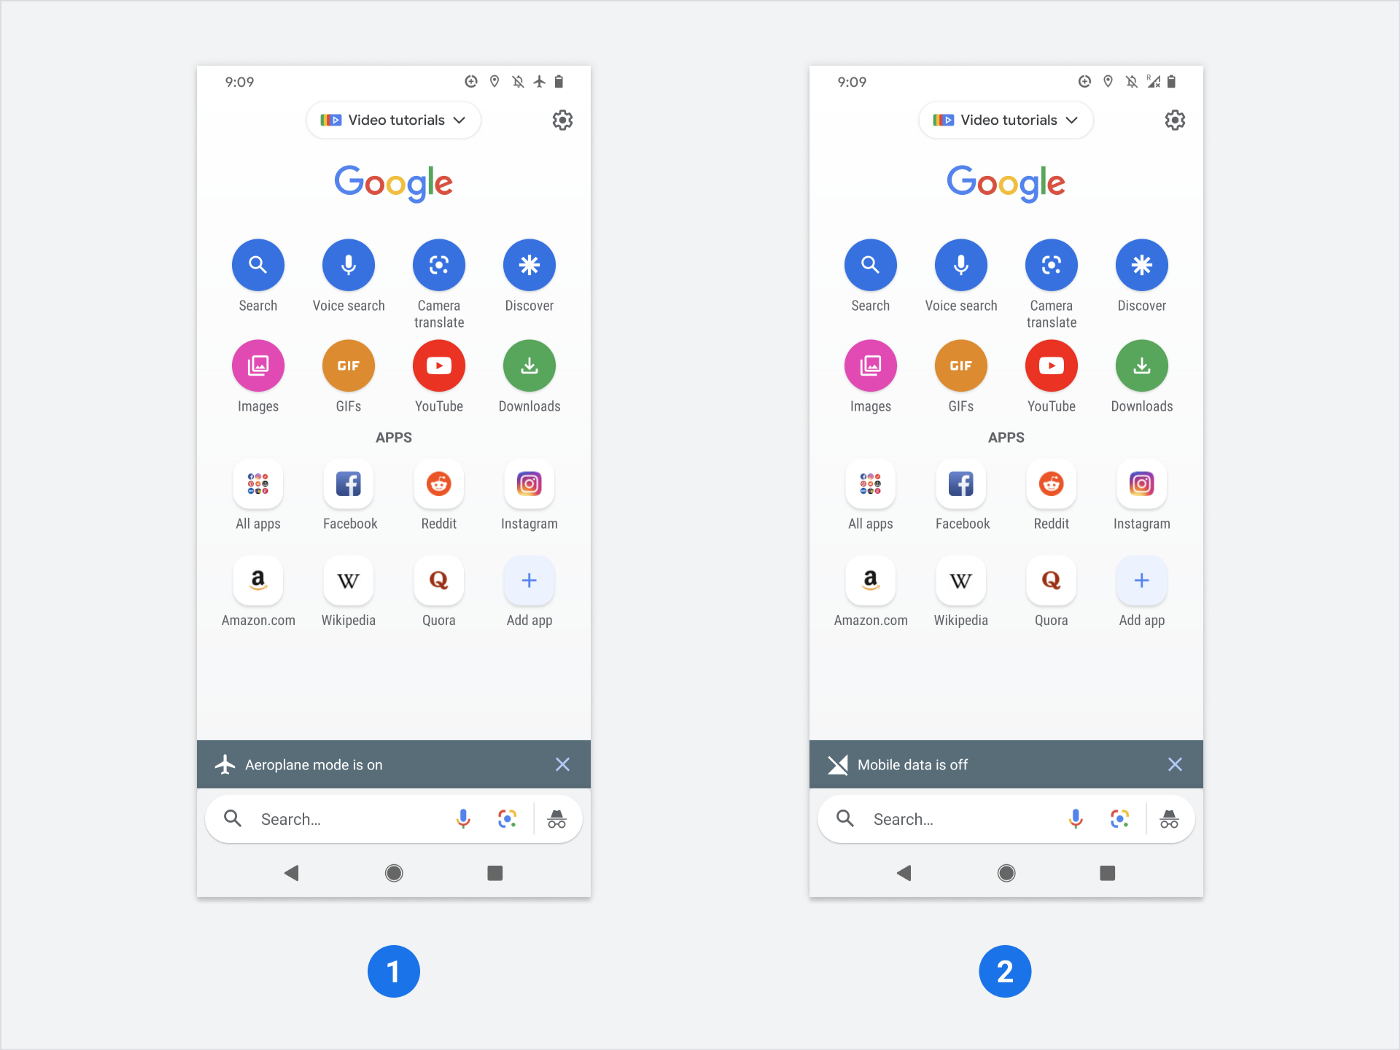 Google Go search app with 16 app and website icons